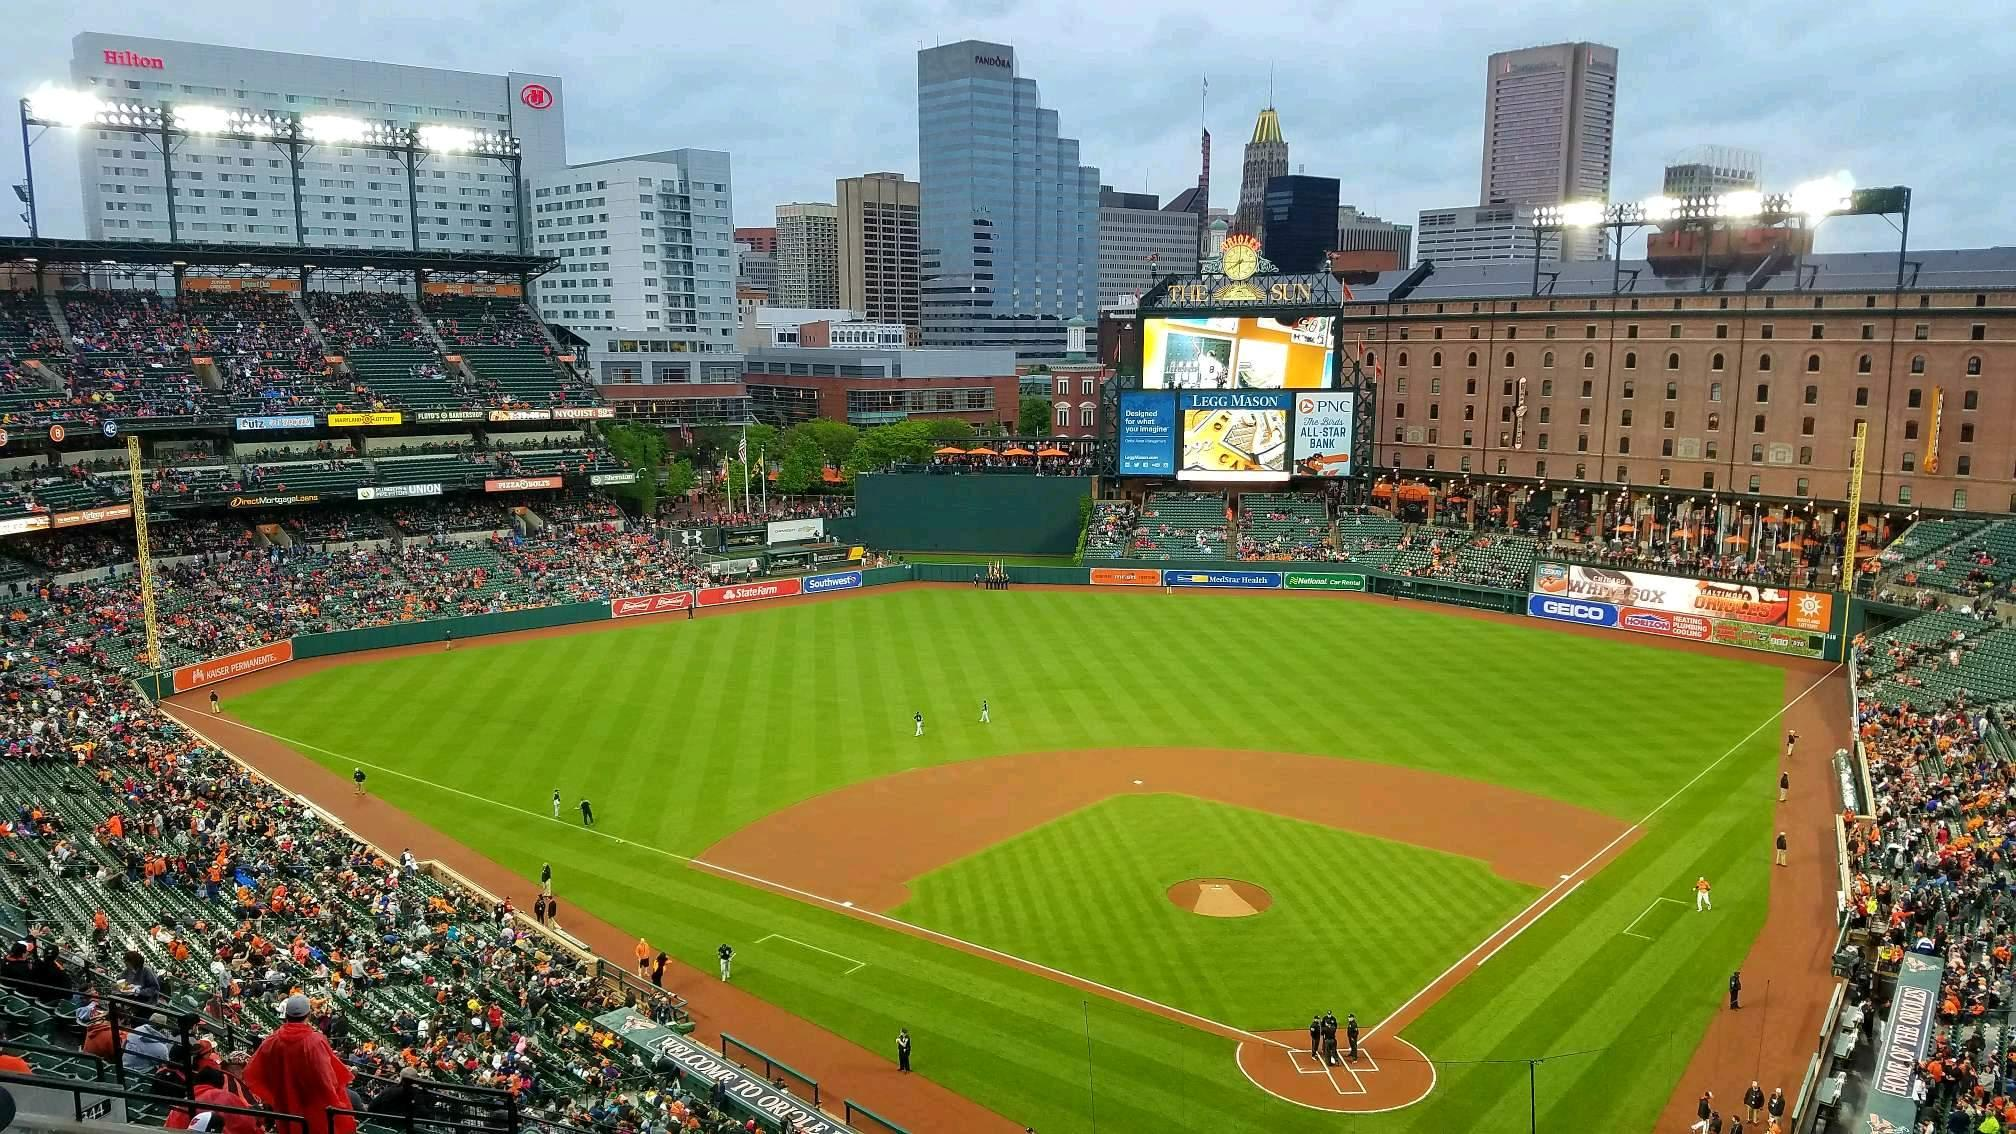 Oriole Park at Camden Yards Section 342 Row 17 Seat 3